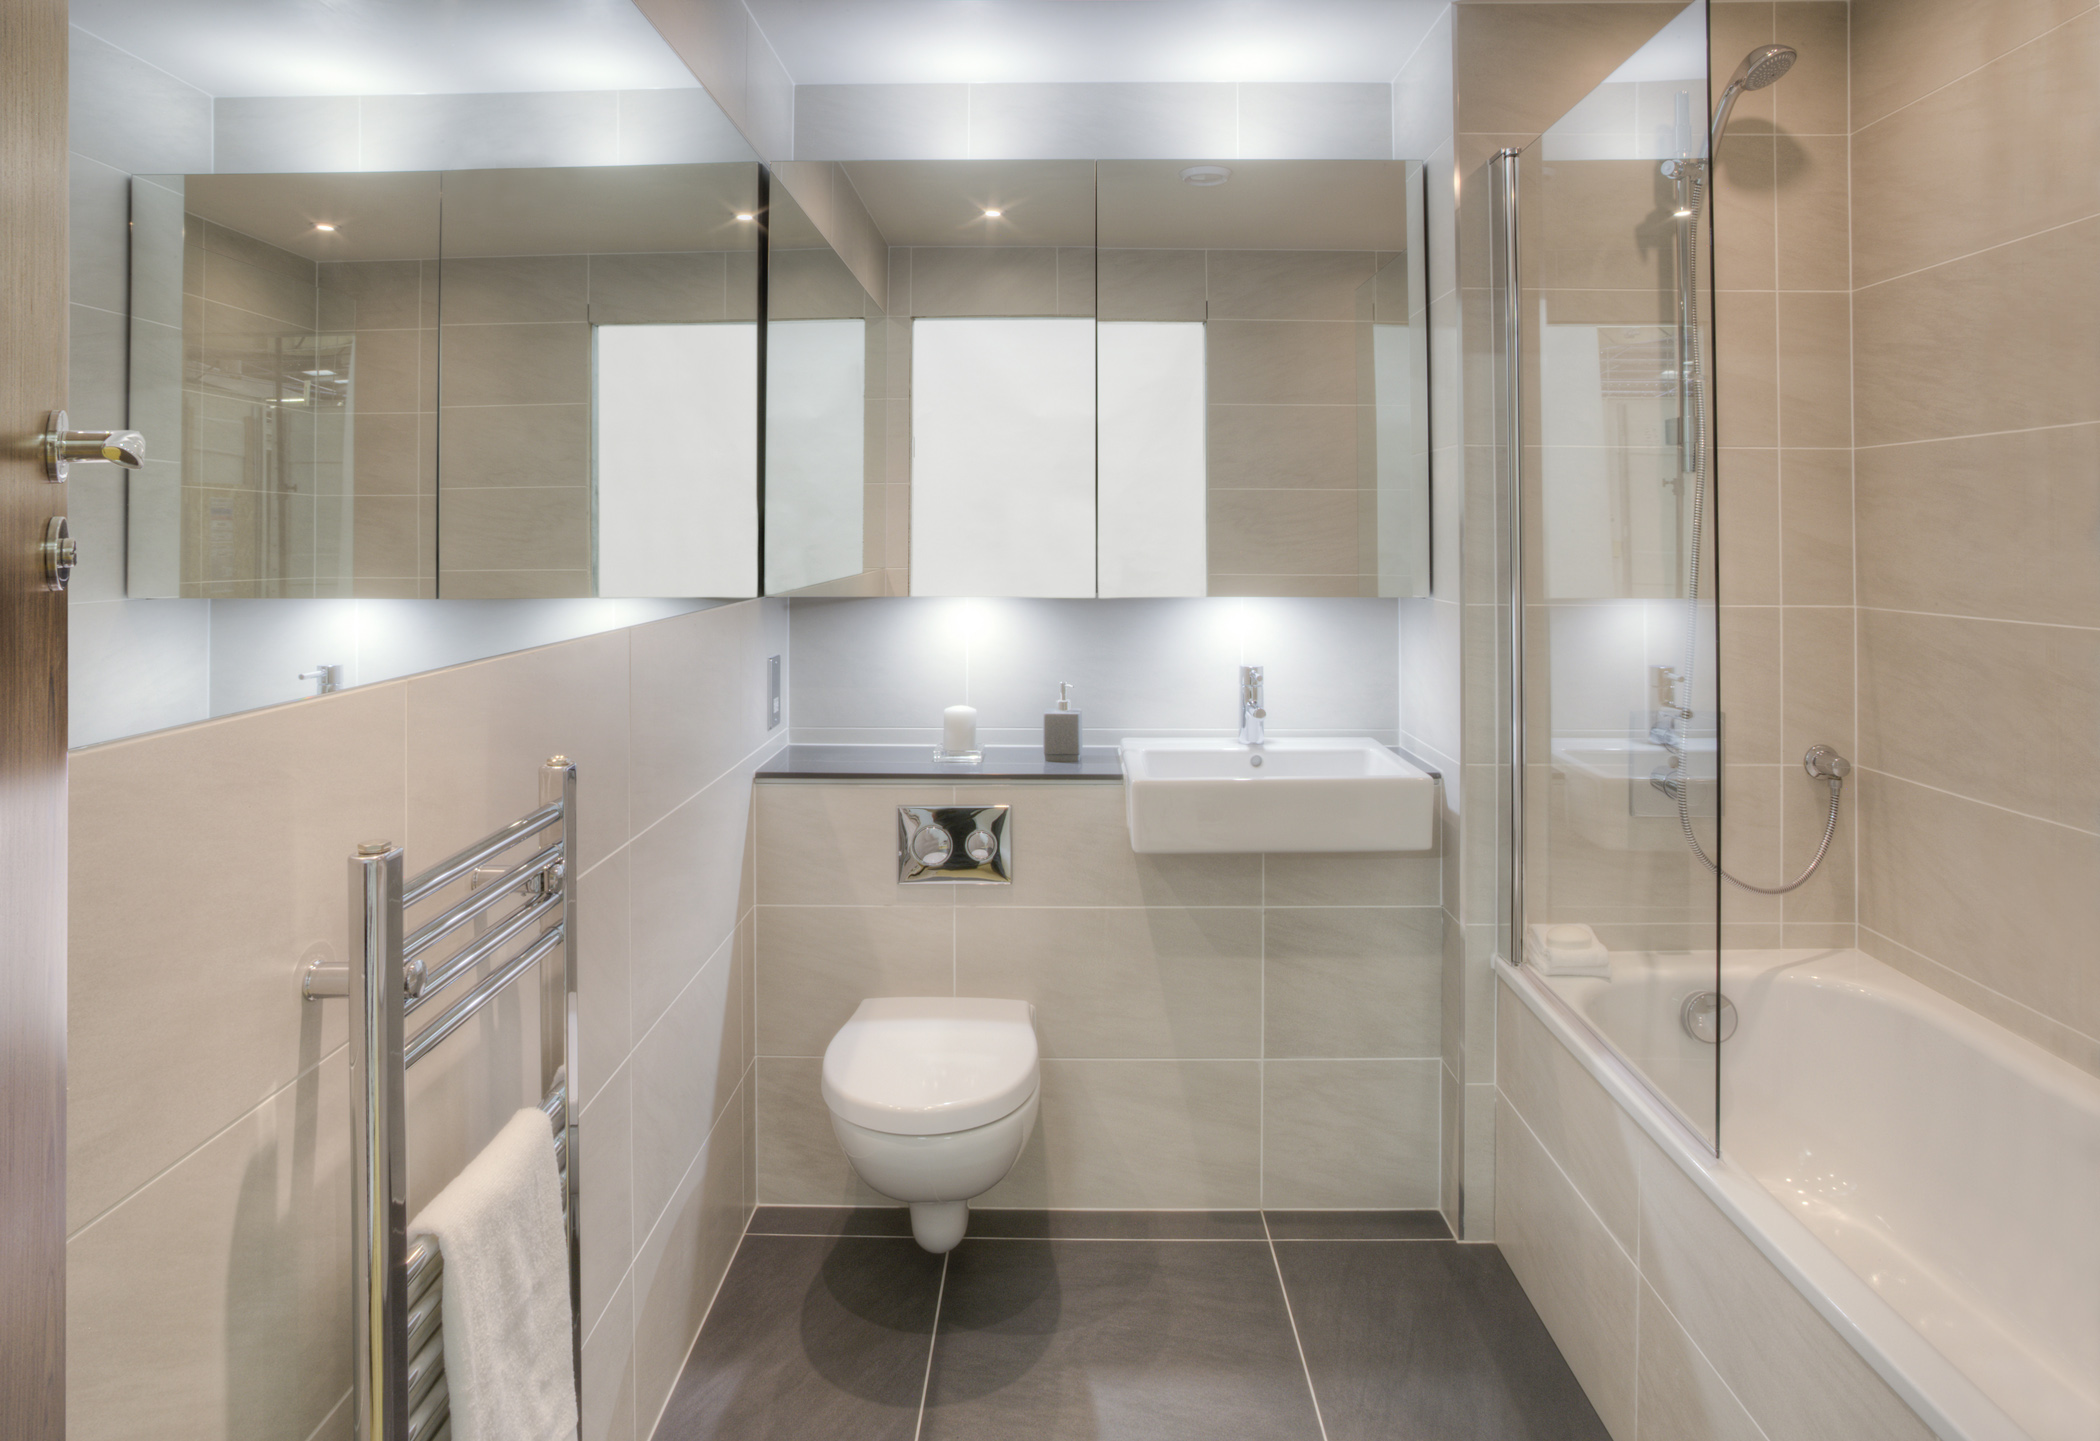 Offsite Solutions launches RIBA-accredited CPD for bathroom pods